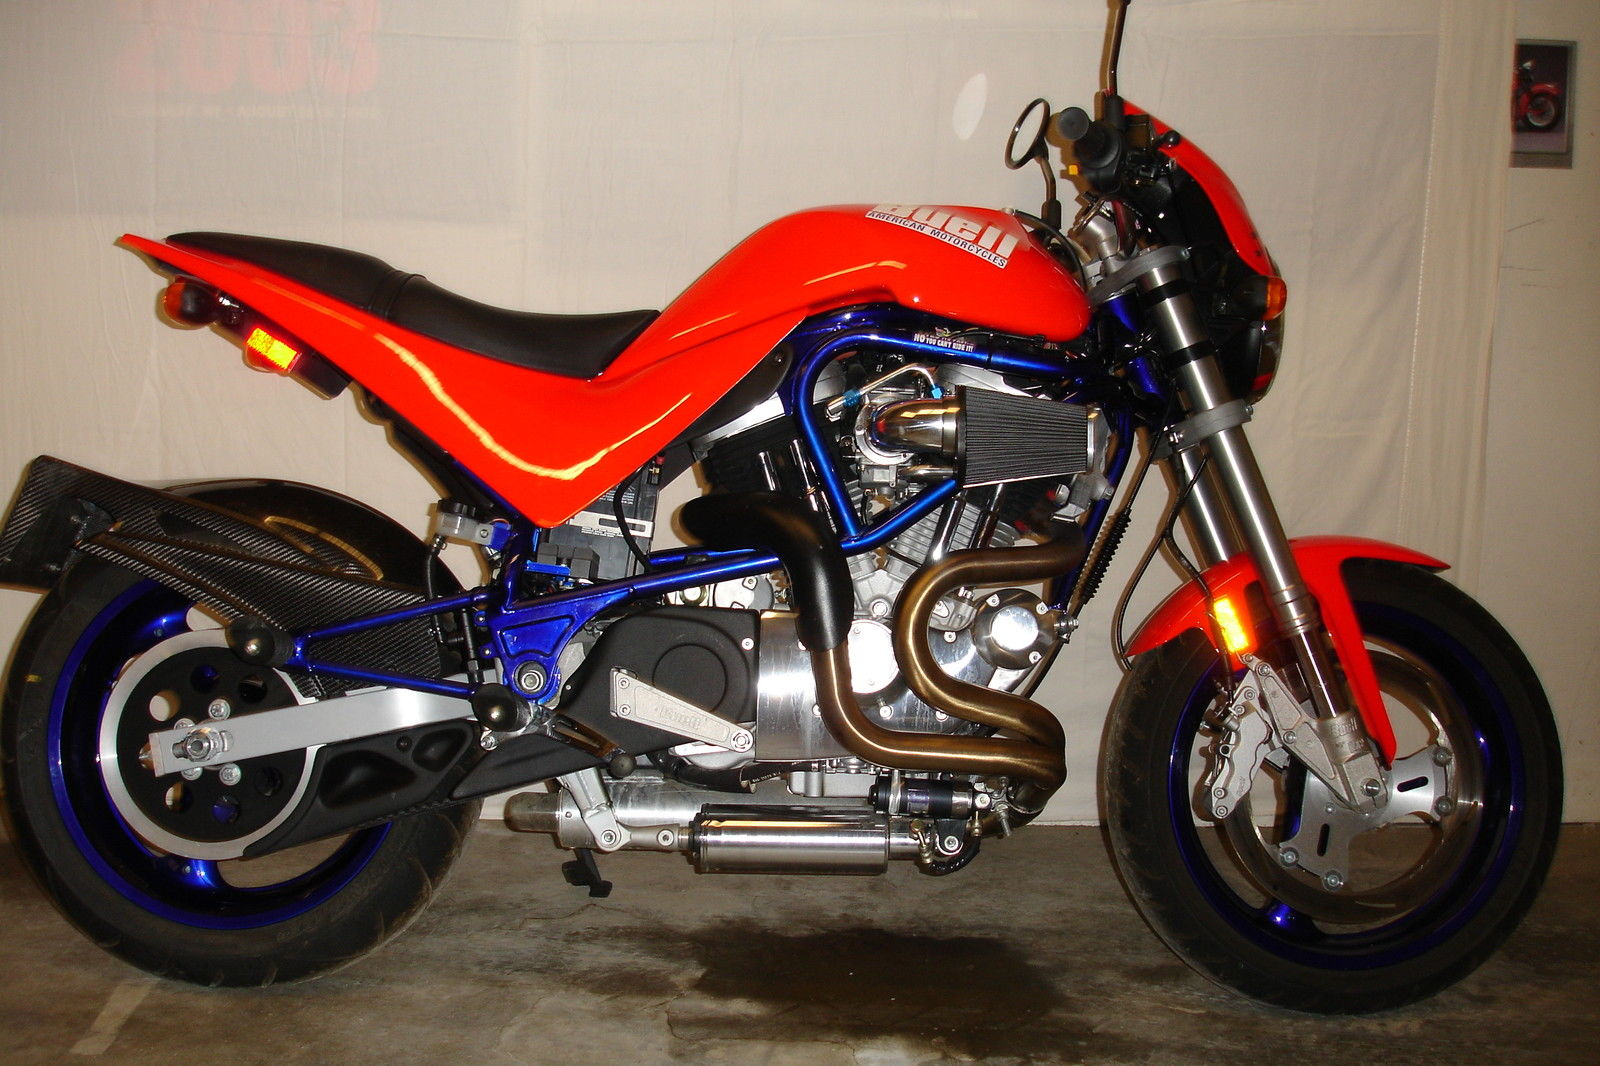 Buell Motorcycles For Sale >> Raw Awesome 1998 Buell S1 Lightning - Rare SportBikes For Sale